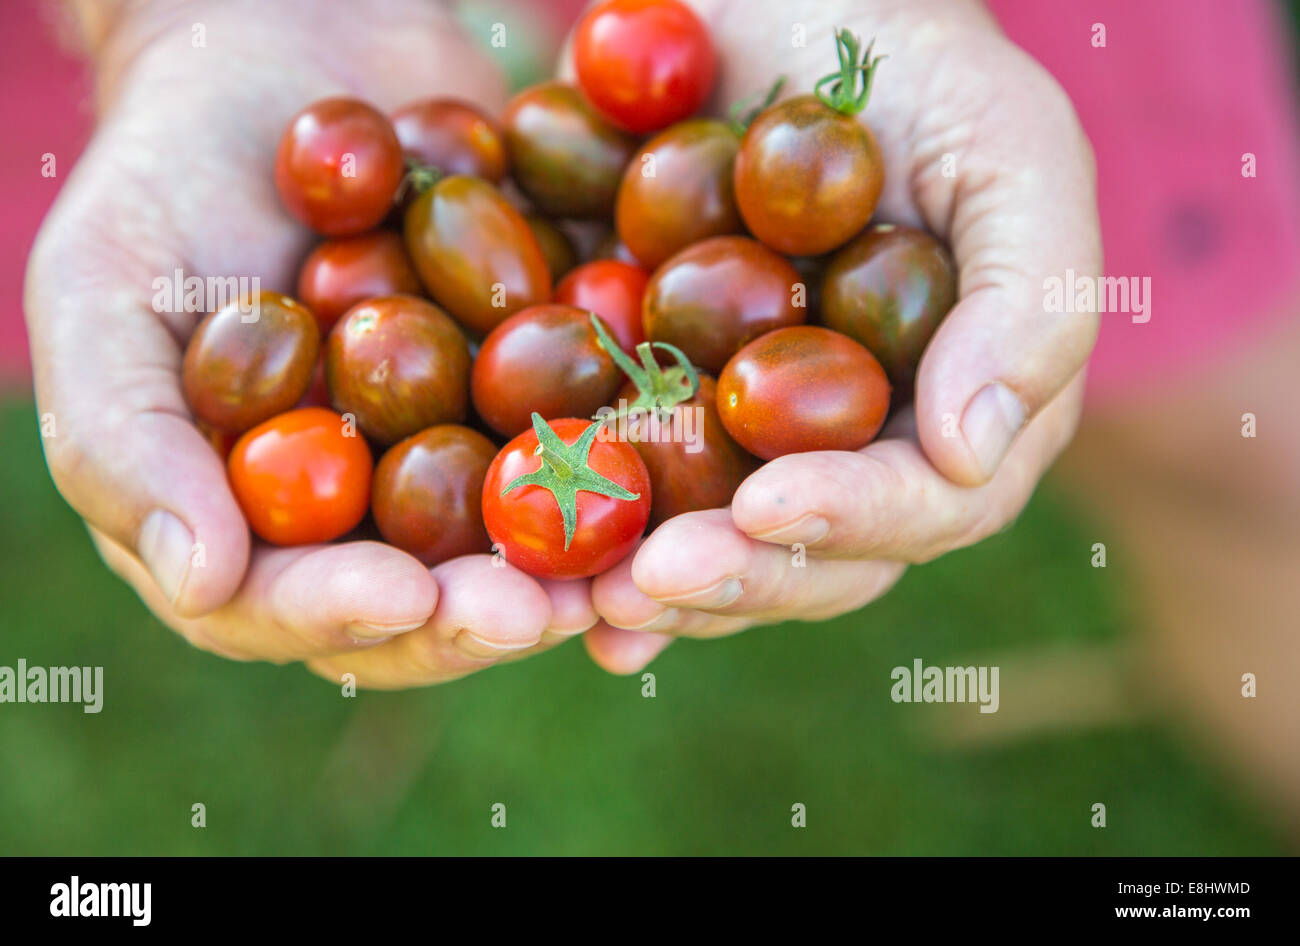 homegrown just picked cherry tomatoes held in the hand Stock Photo